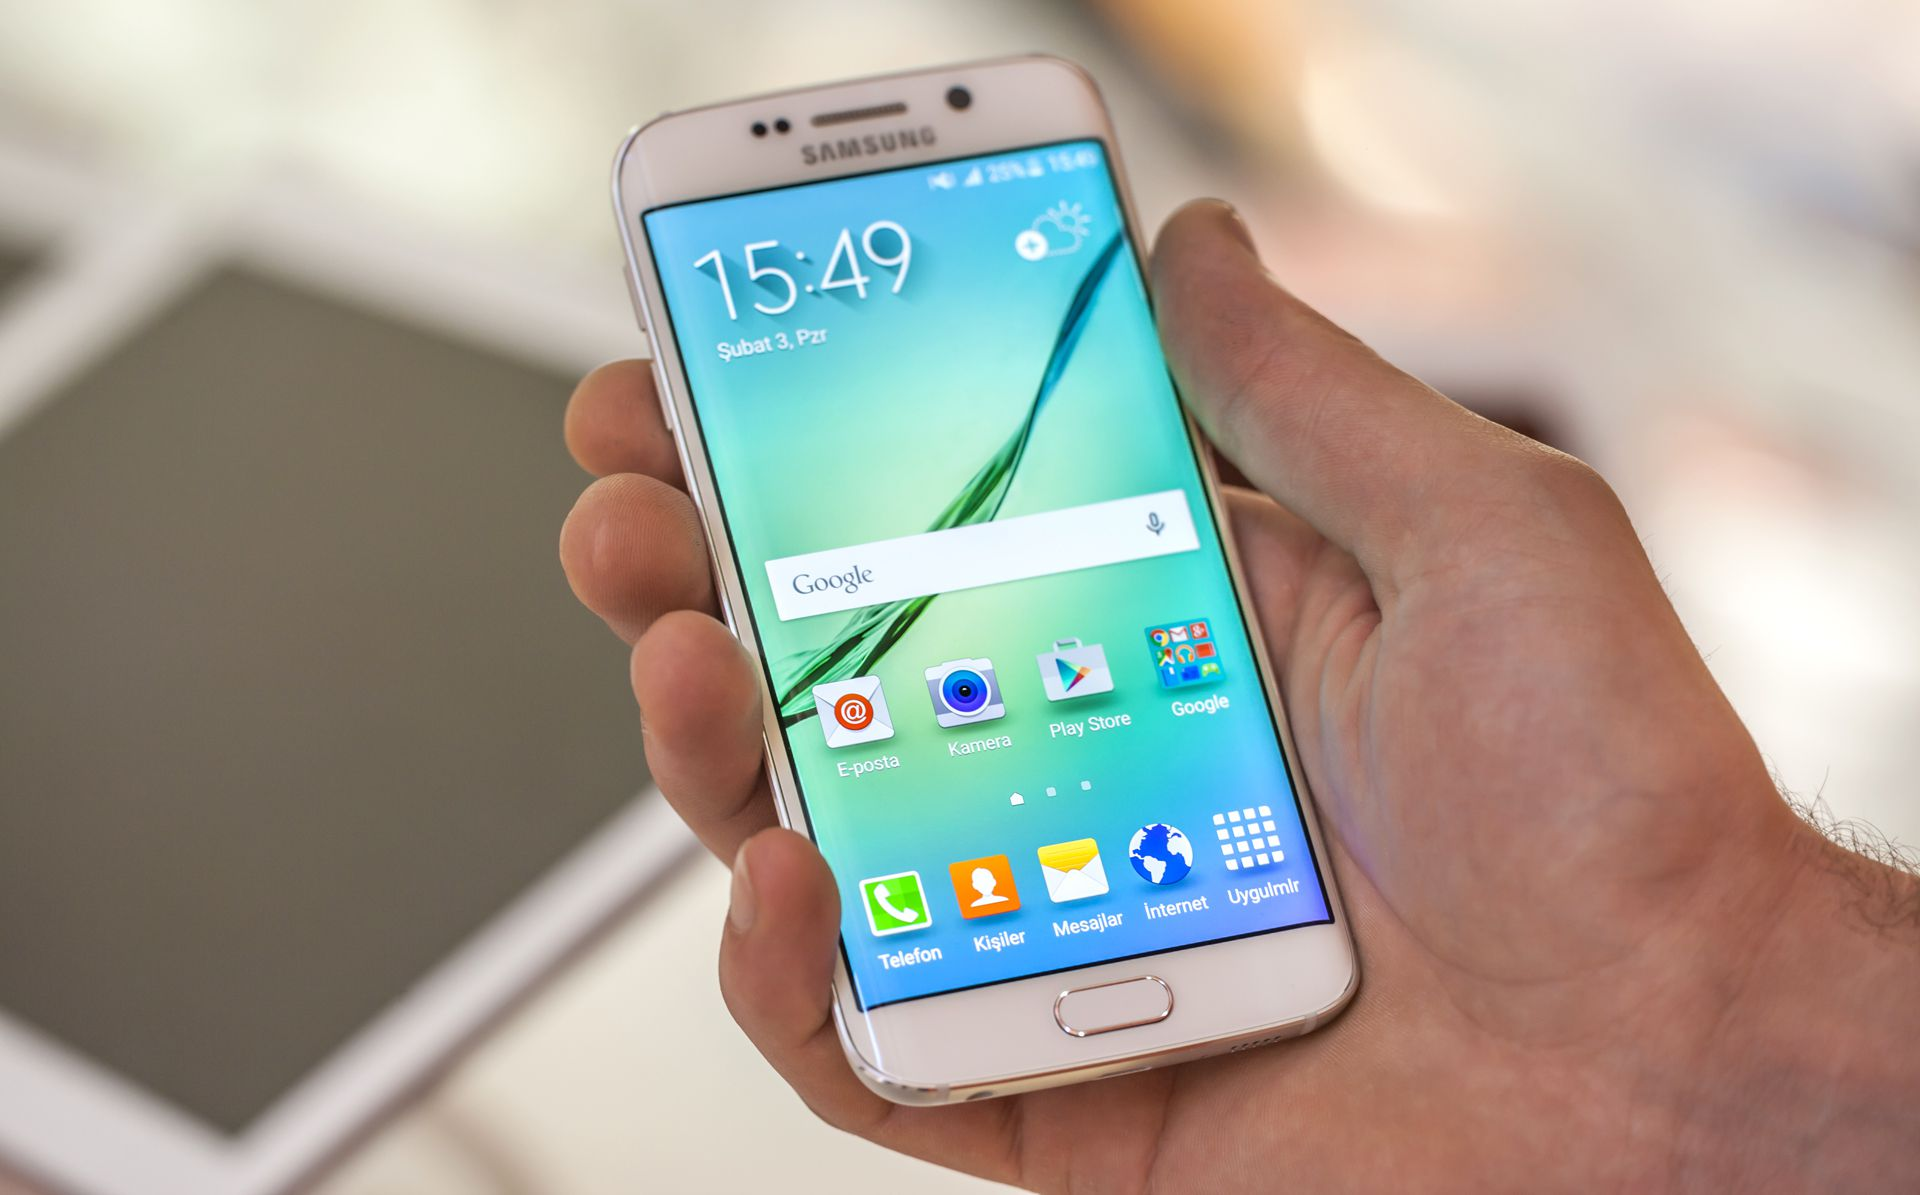 Close-up of a hand holding a Samsung Galaxy S6 Android smartphone.